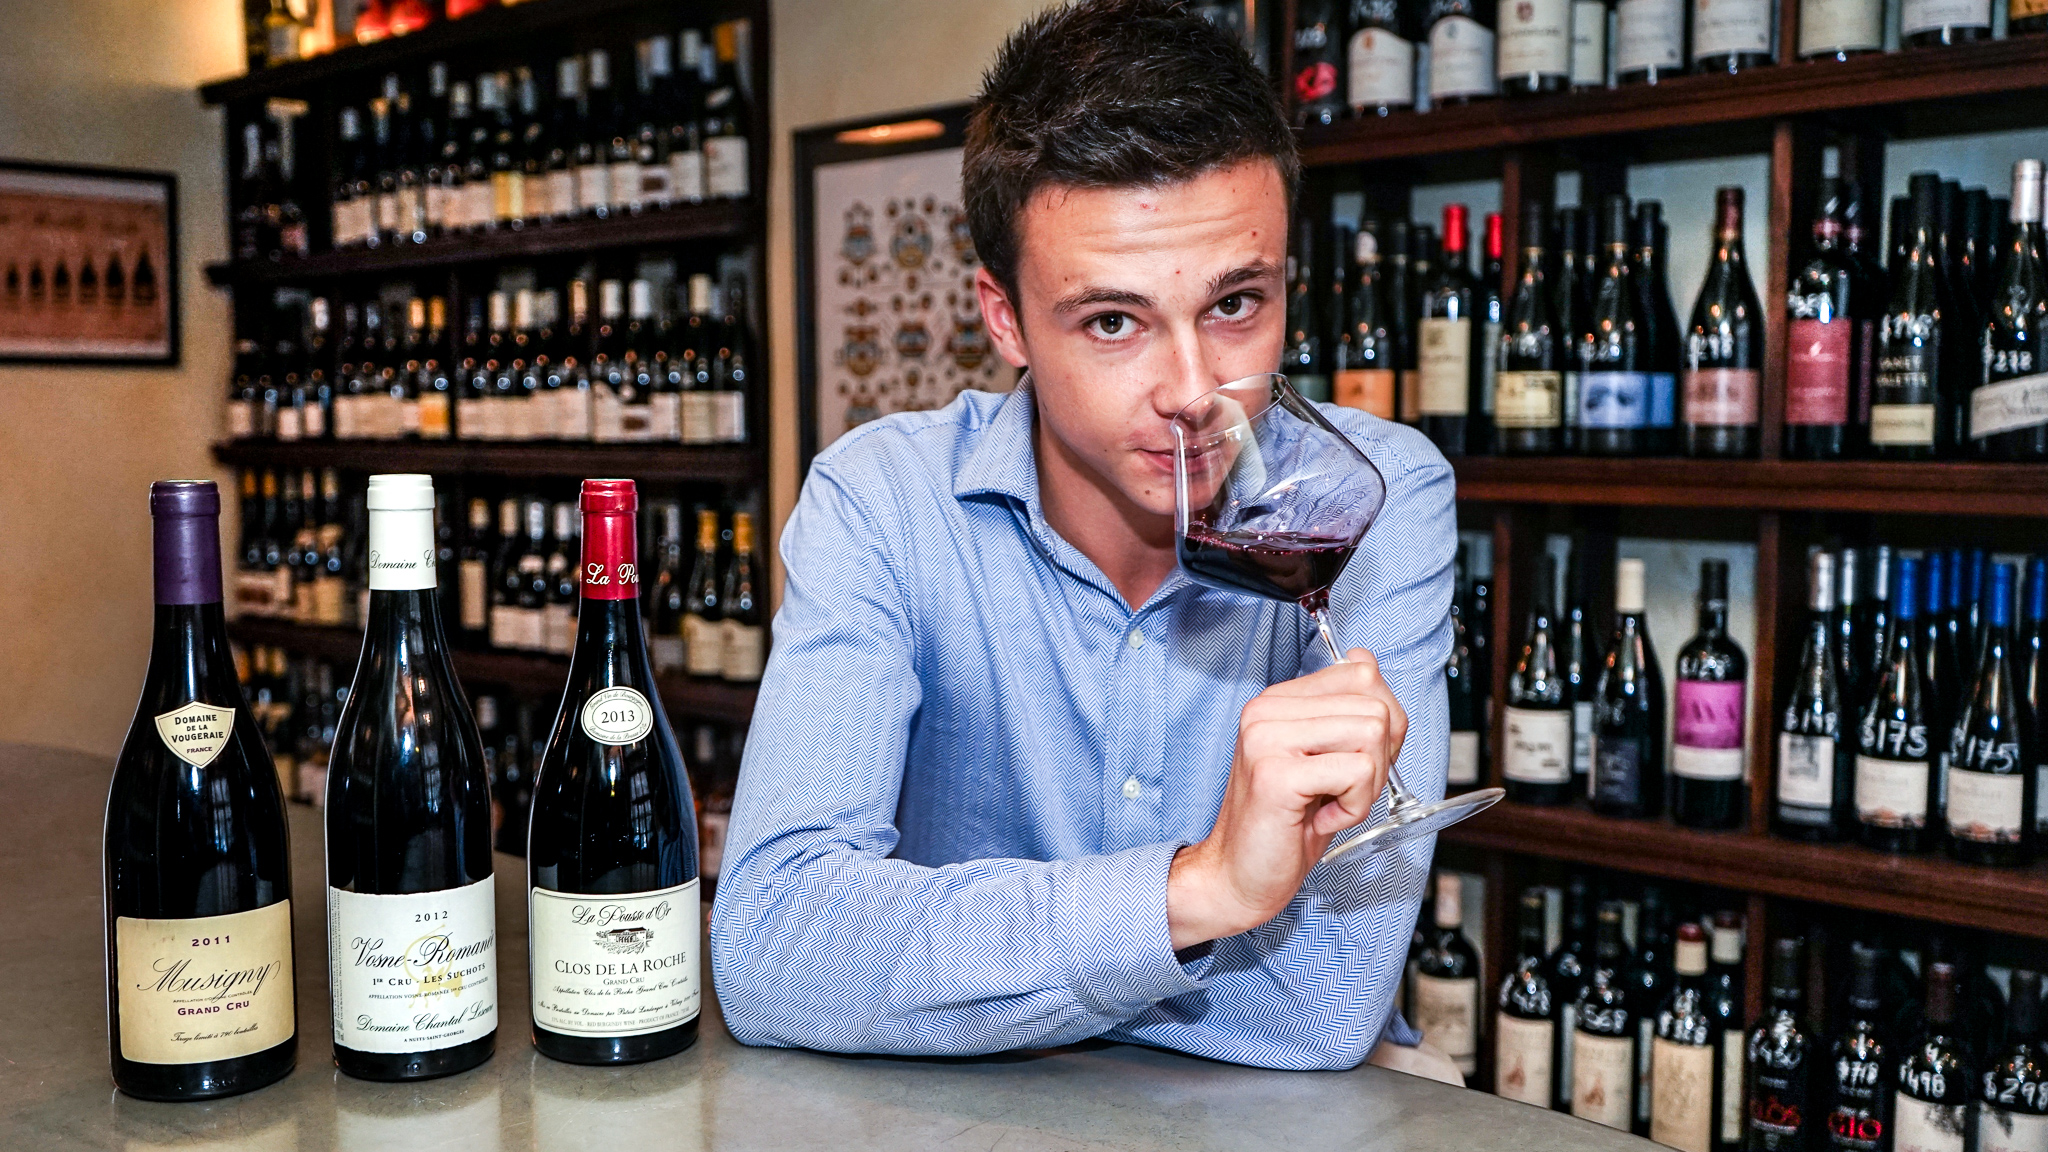 Aurélien la saint - our « BURGUNDY Winelover »